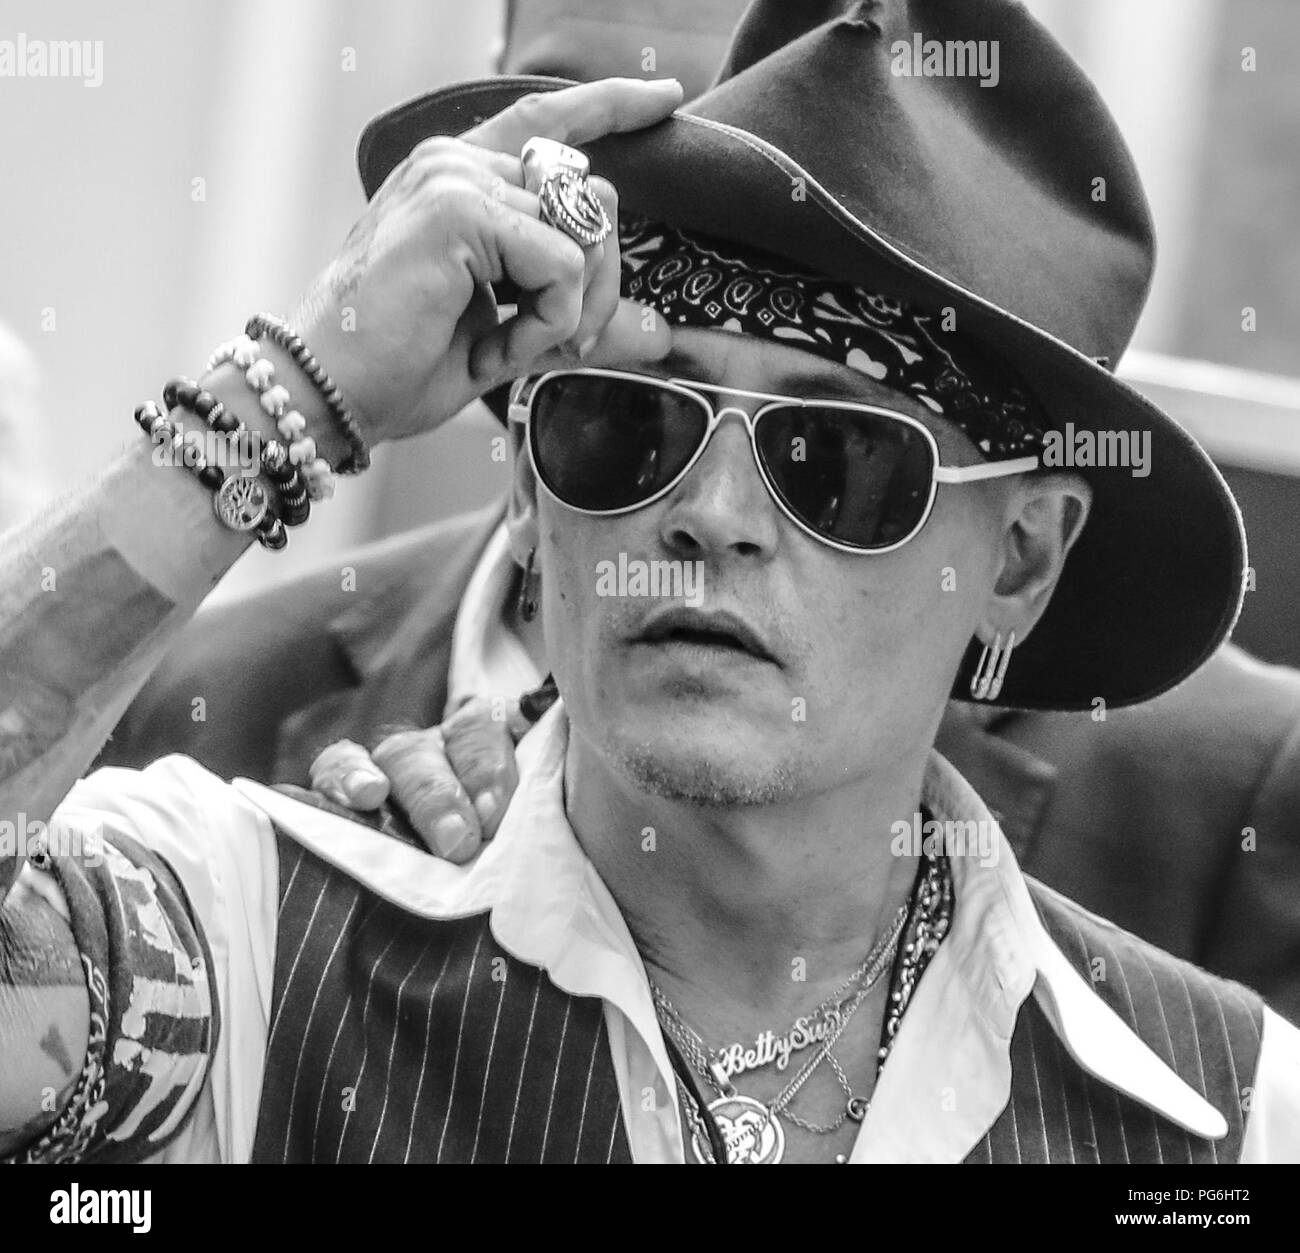 John Depp Black And White Stock Photos Images Alamy